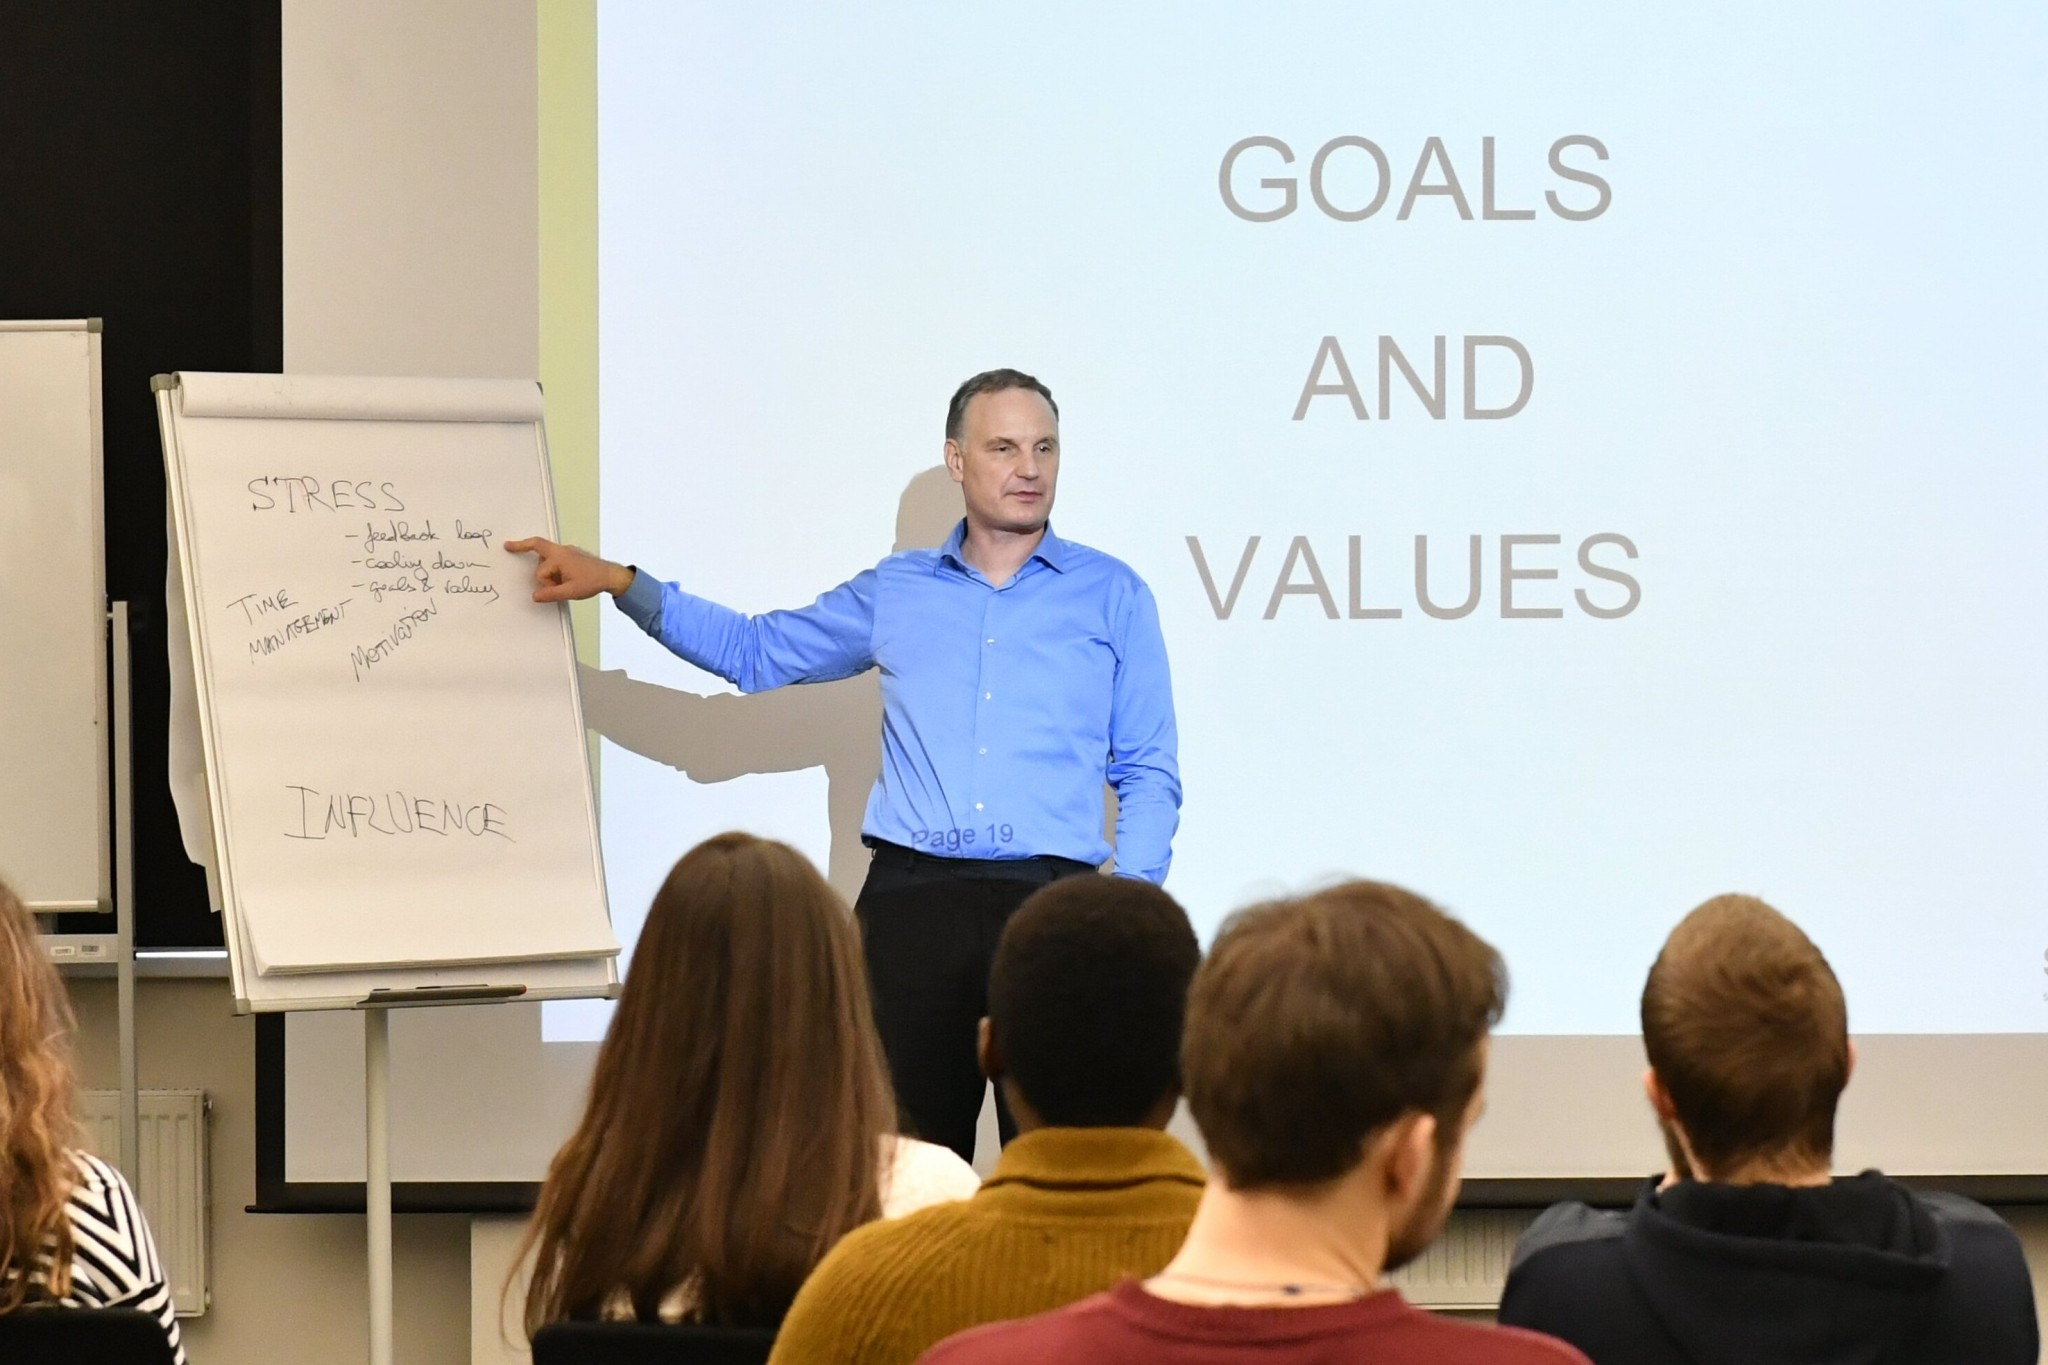 Kulish guides his students through an exercise aimed at identifying their goals and values. Photo: Skoltech.